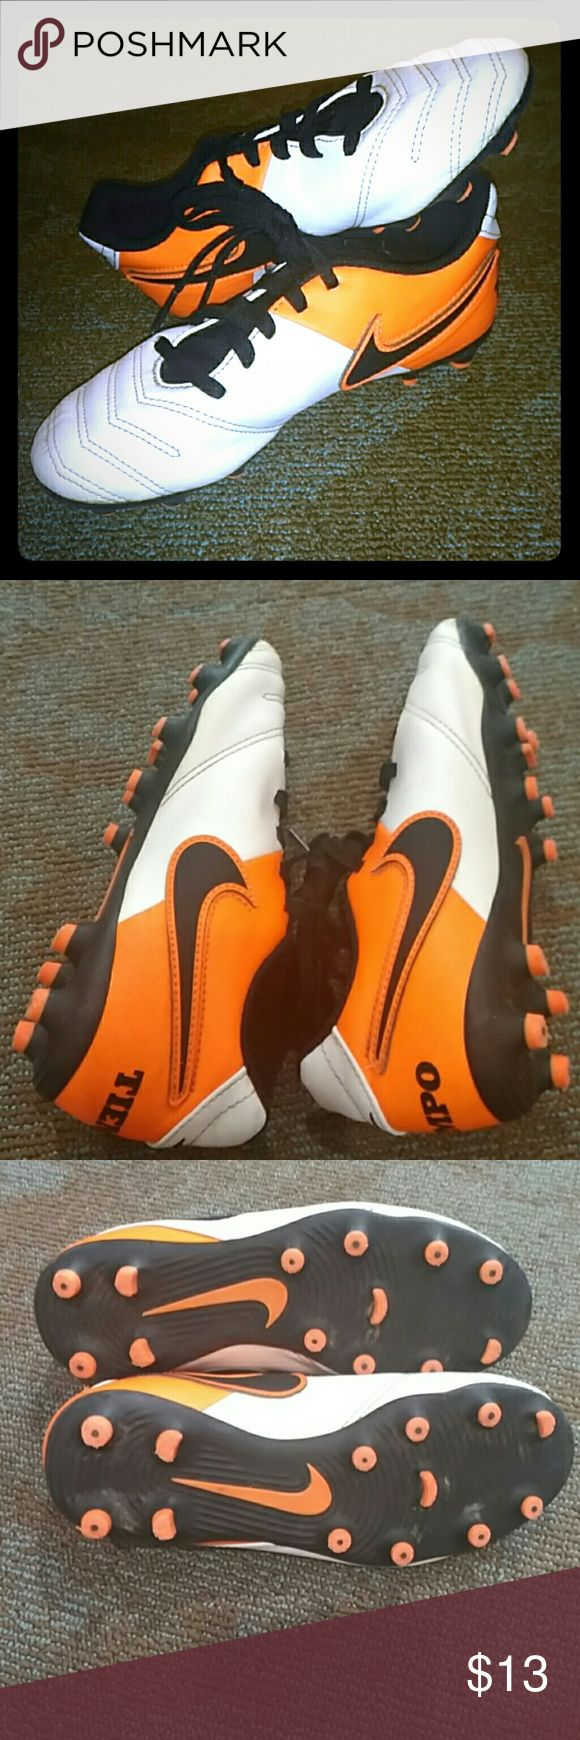 Boys Nike Tiempo soccer cleats Great shape! Little boys Nike size 1.5 soccer cleats. Nike Shoes Athletic Shoes